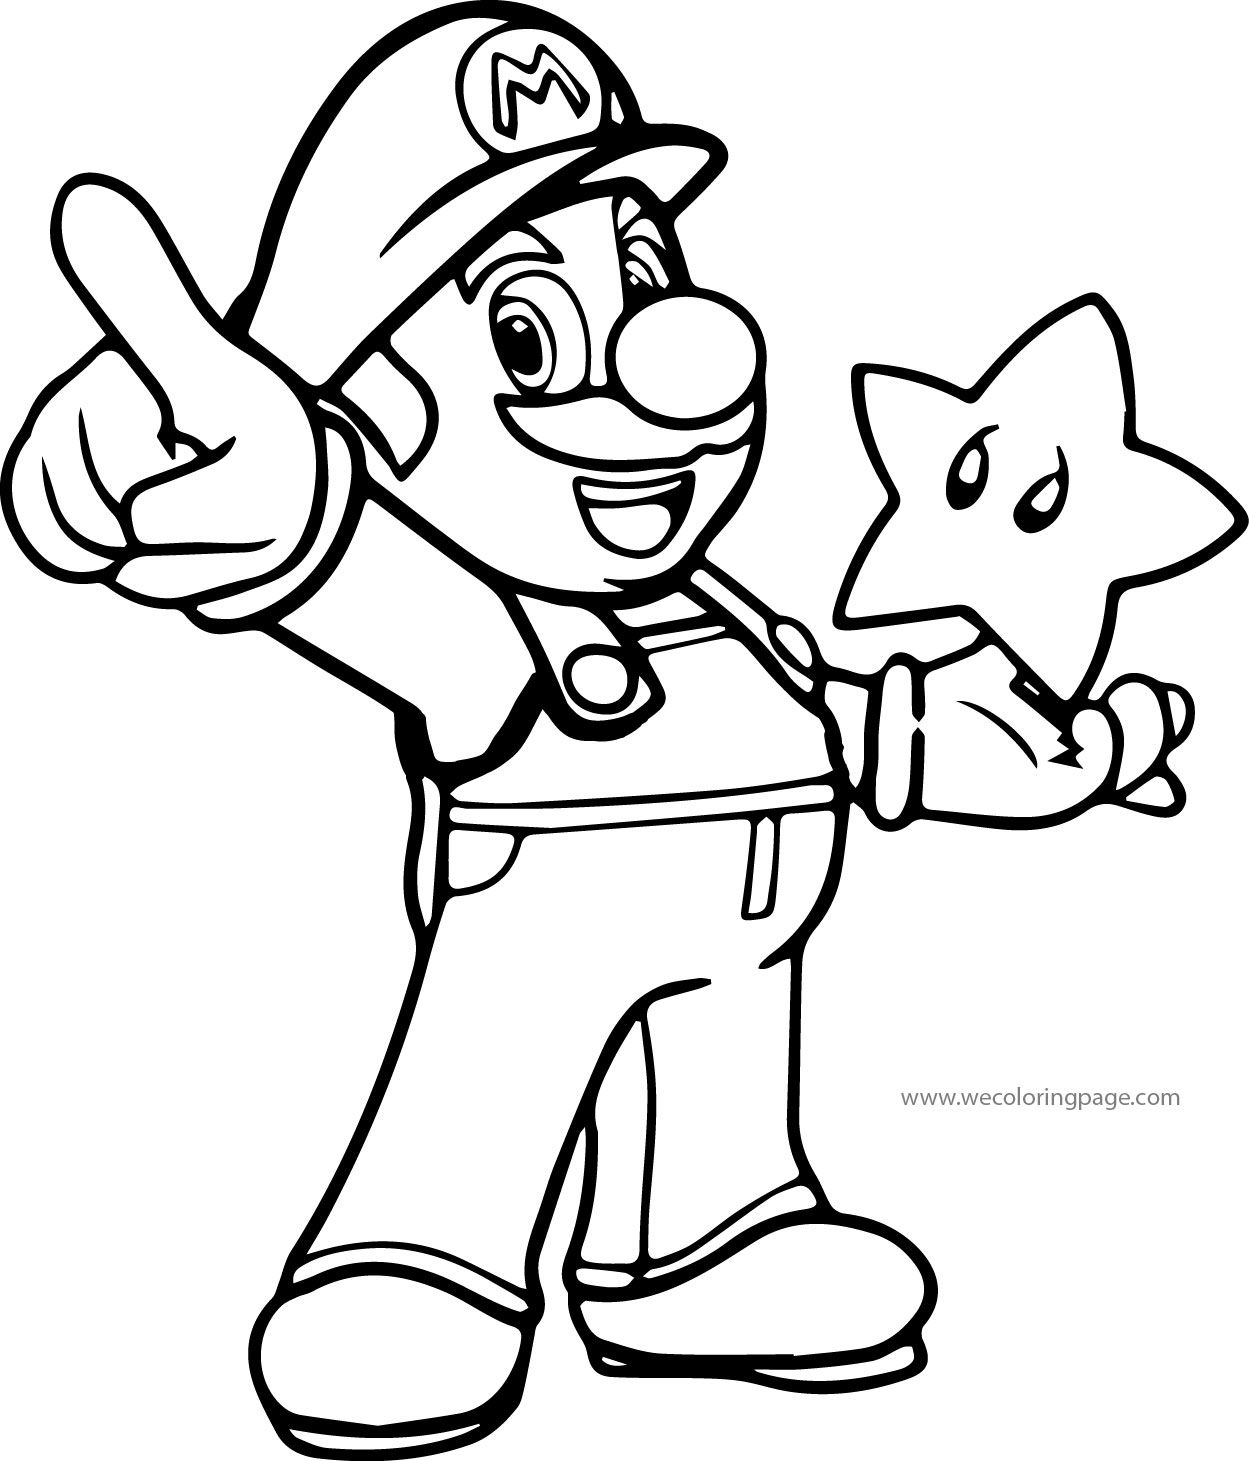 Awesome Super Mario Coloring Page Wecoloringpage